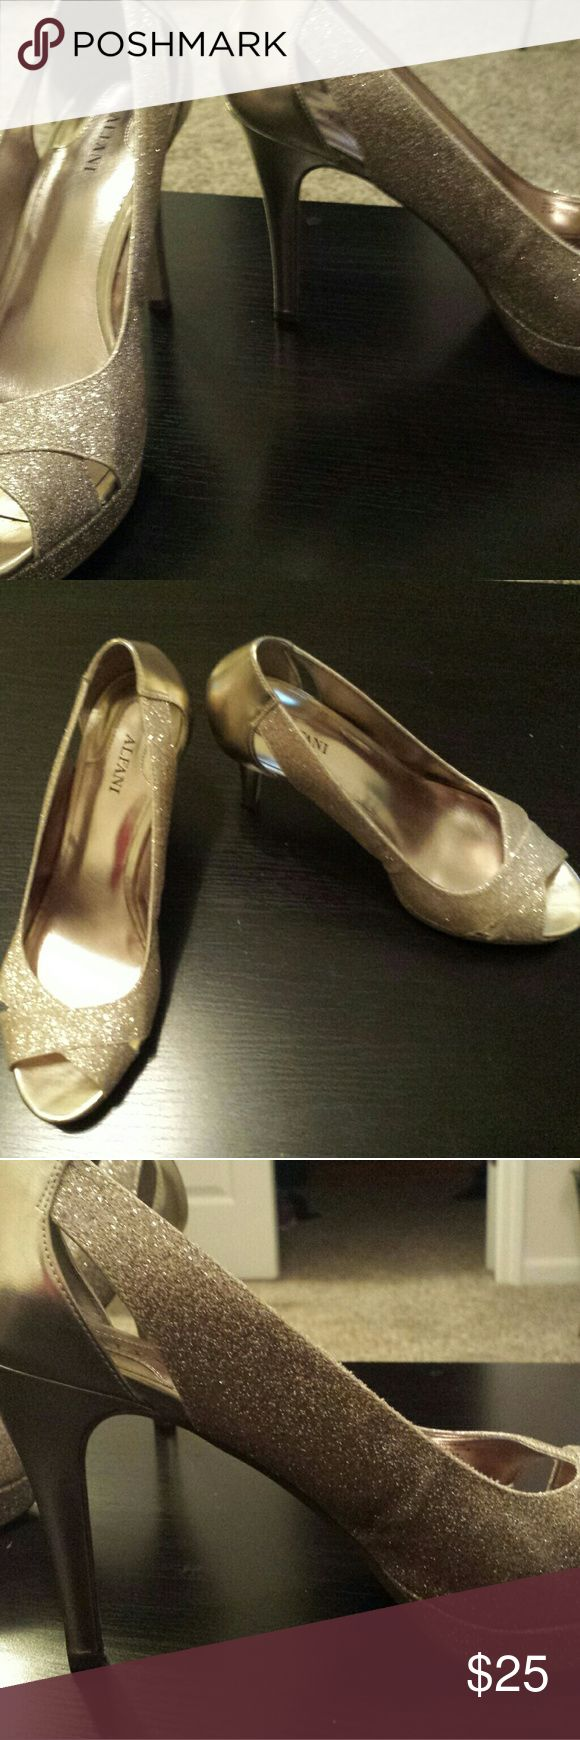 "Size 8.5 Alfani gold peep toe heels Like new condition. Size 8.5 Alfani gold glitter heels. Worn once. 3"" heel. Alfani Shoes"